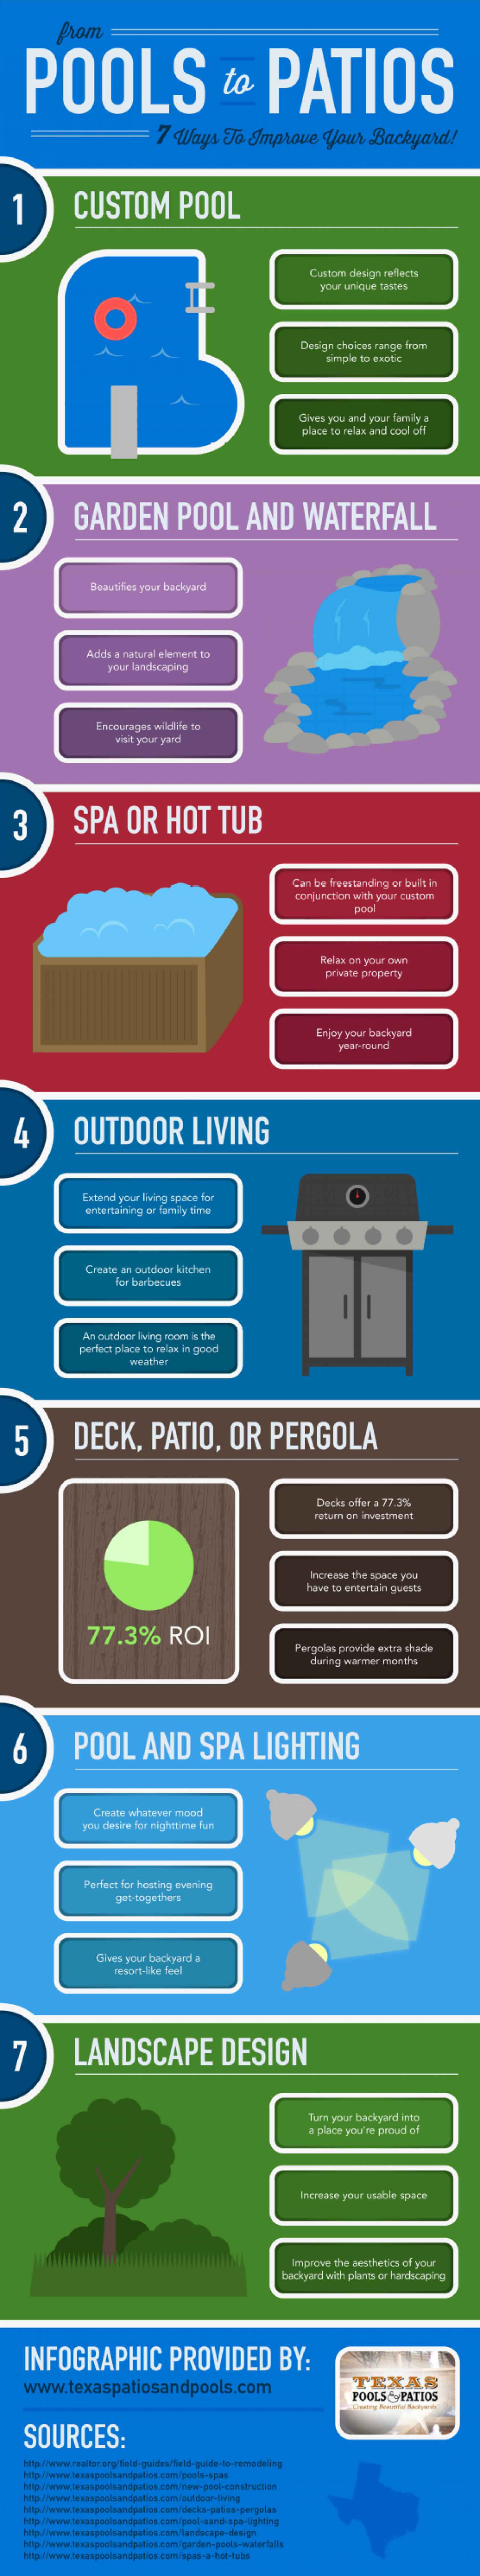 From Pools to Patios, 7 Ways to Improve Your Backyard! Infographic